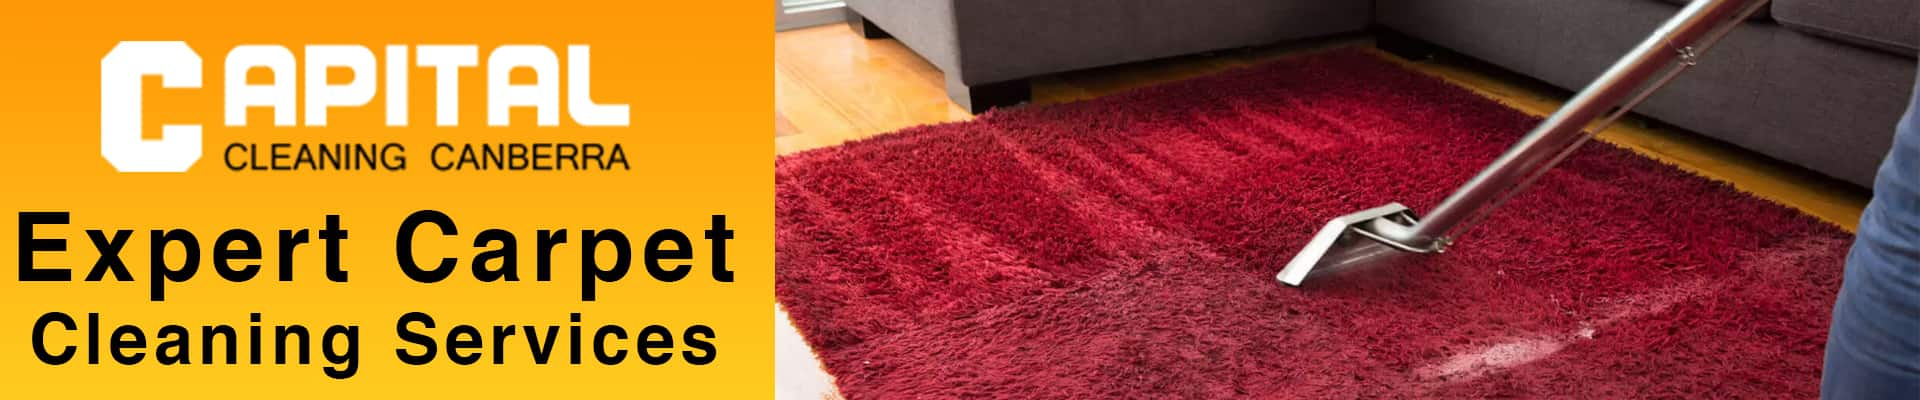 Expert Carpet Cleaning Services Uriarra Village